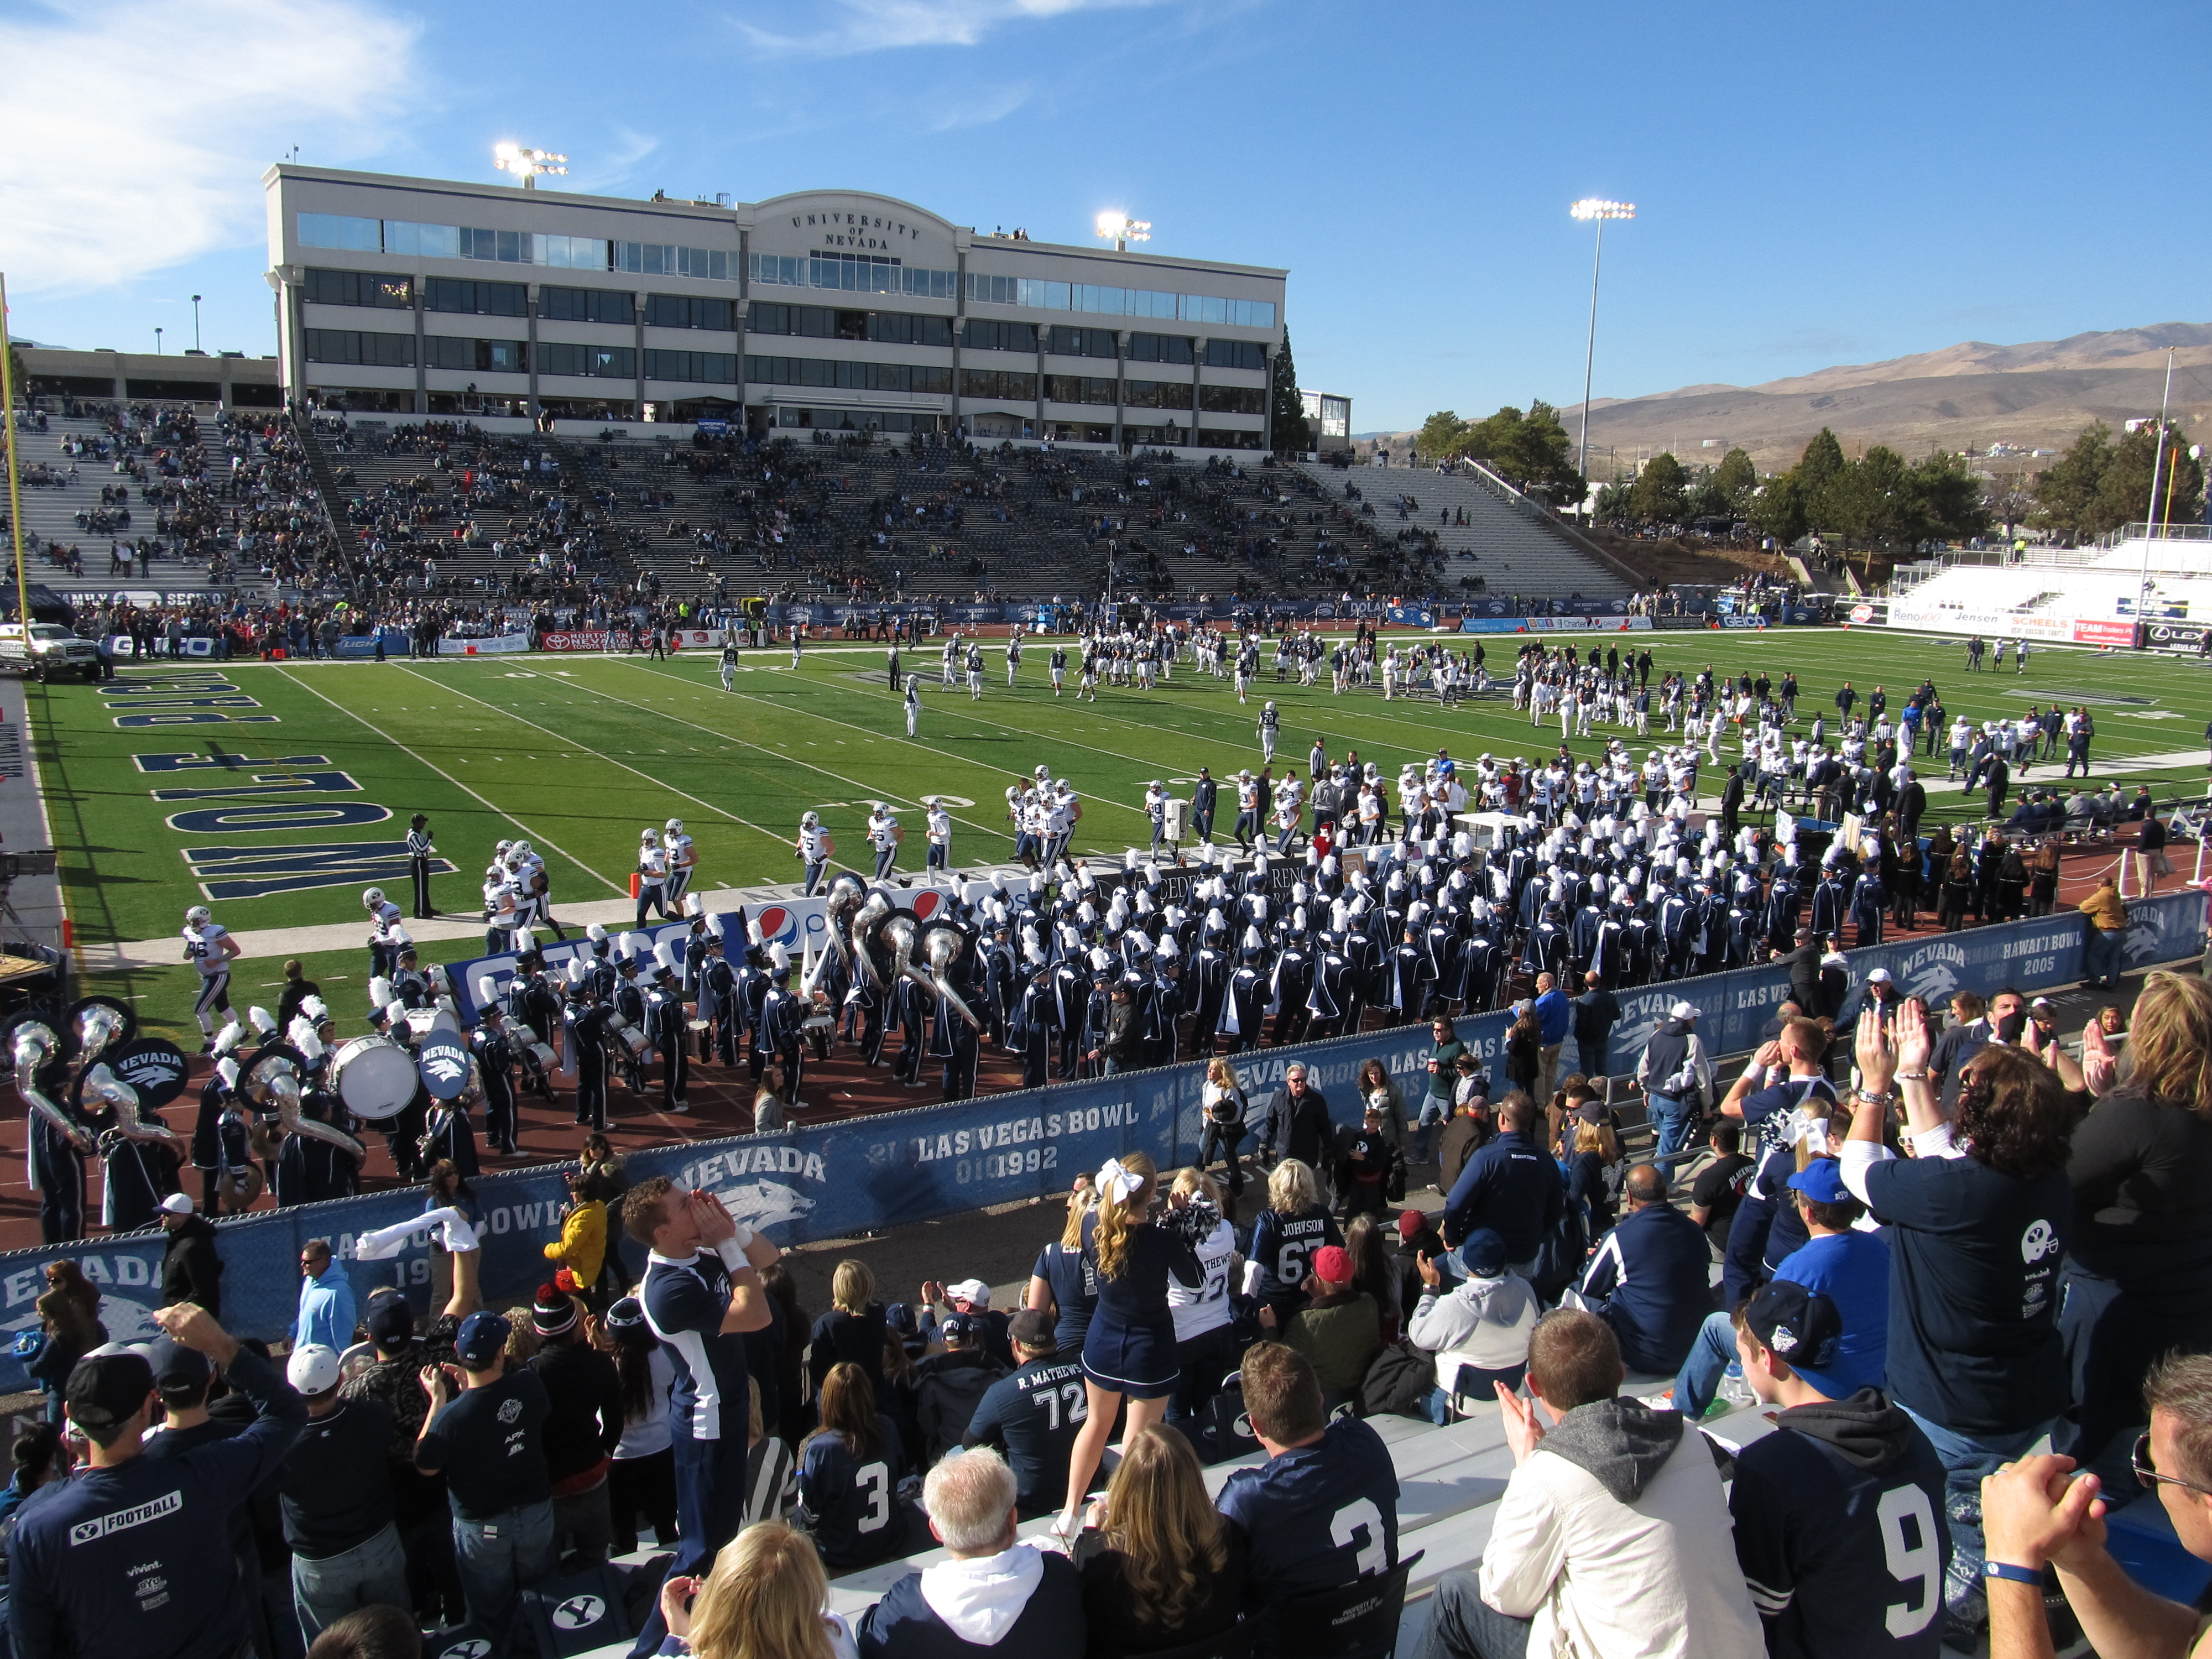 the stadium may decrease slightly the seating capacity as the university plans for upgraded seating options prior to the 2014 football season. In 2013